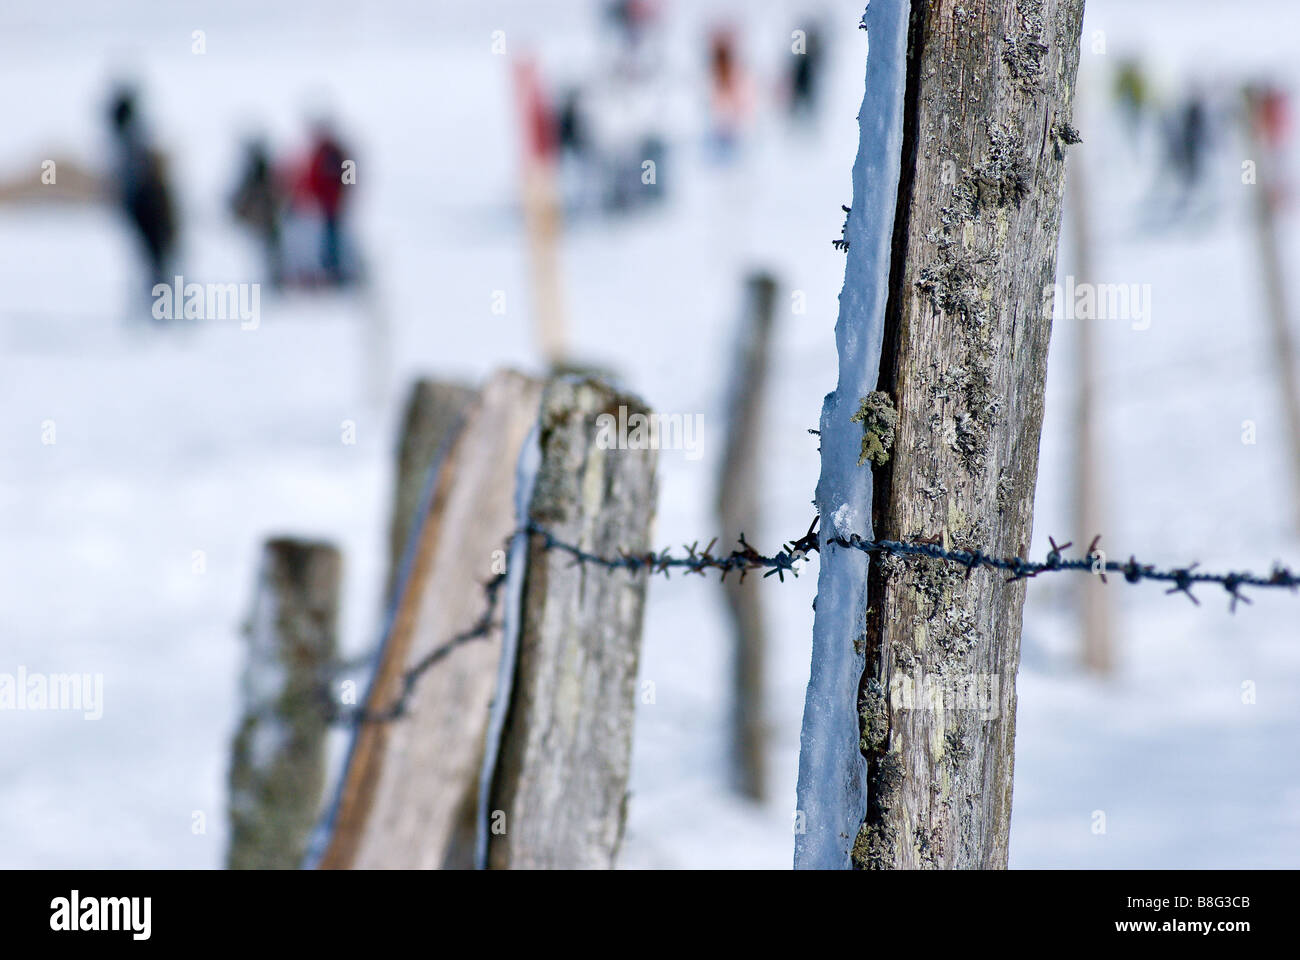 barbed wire fence line motivational row snow - Stock Image